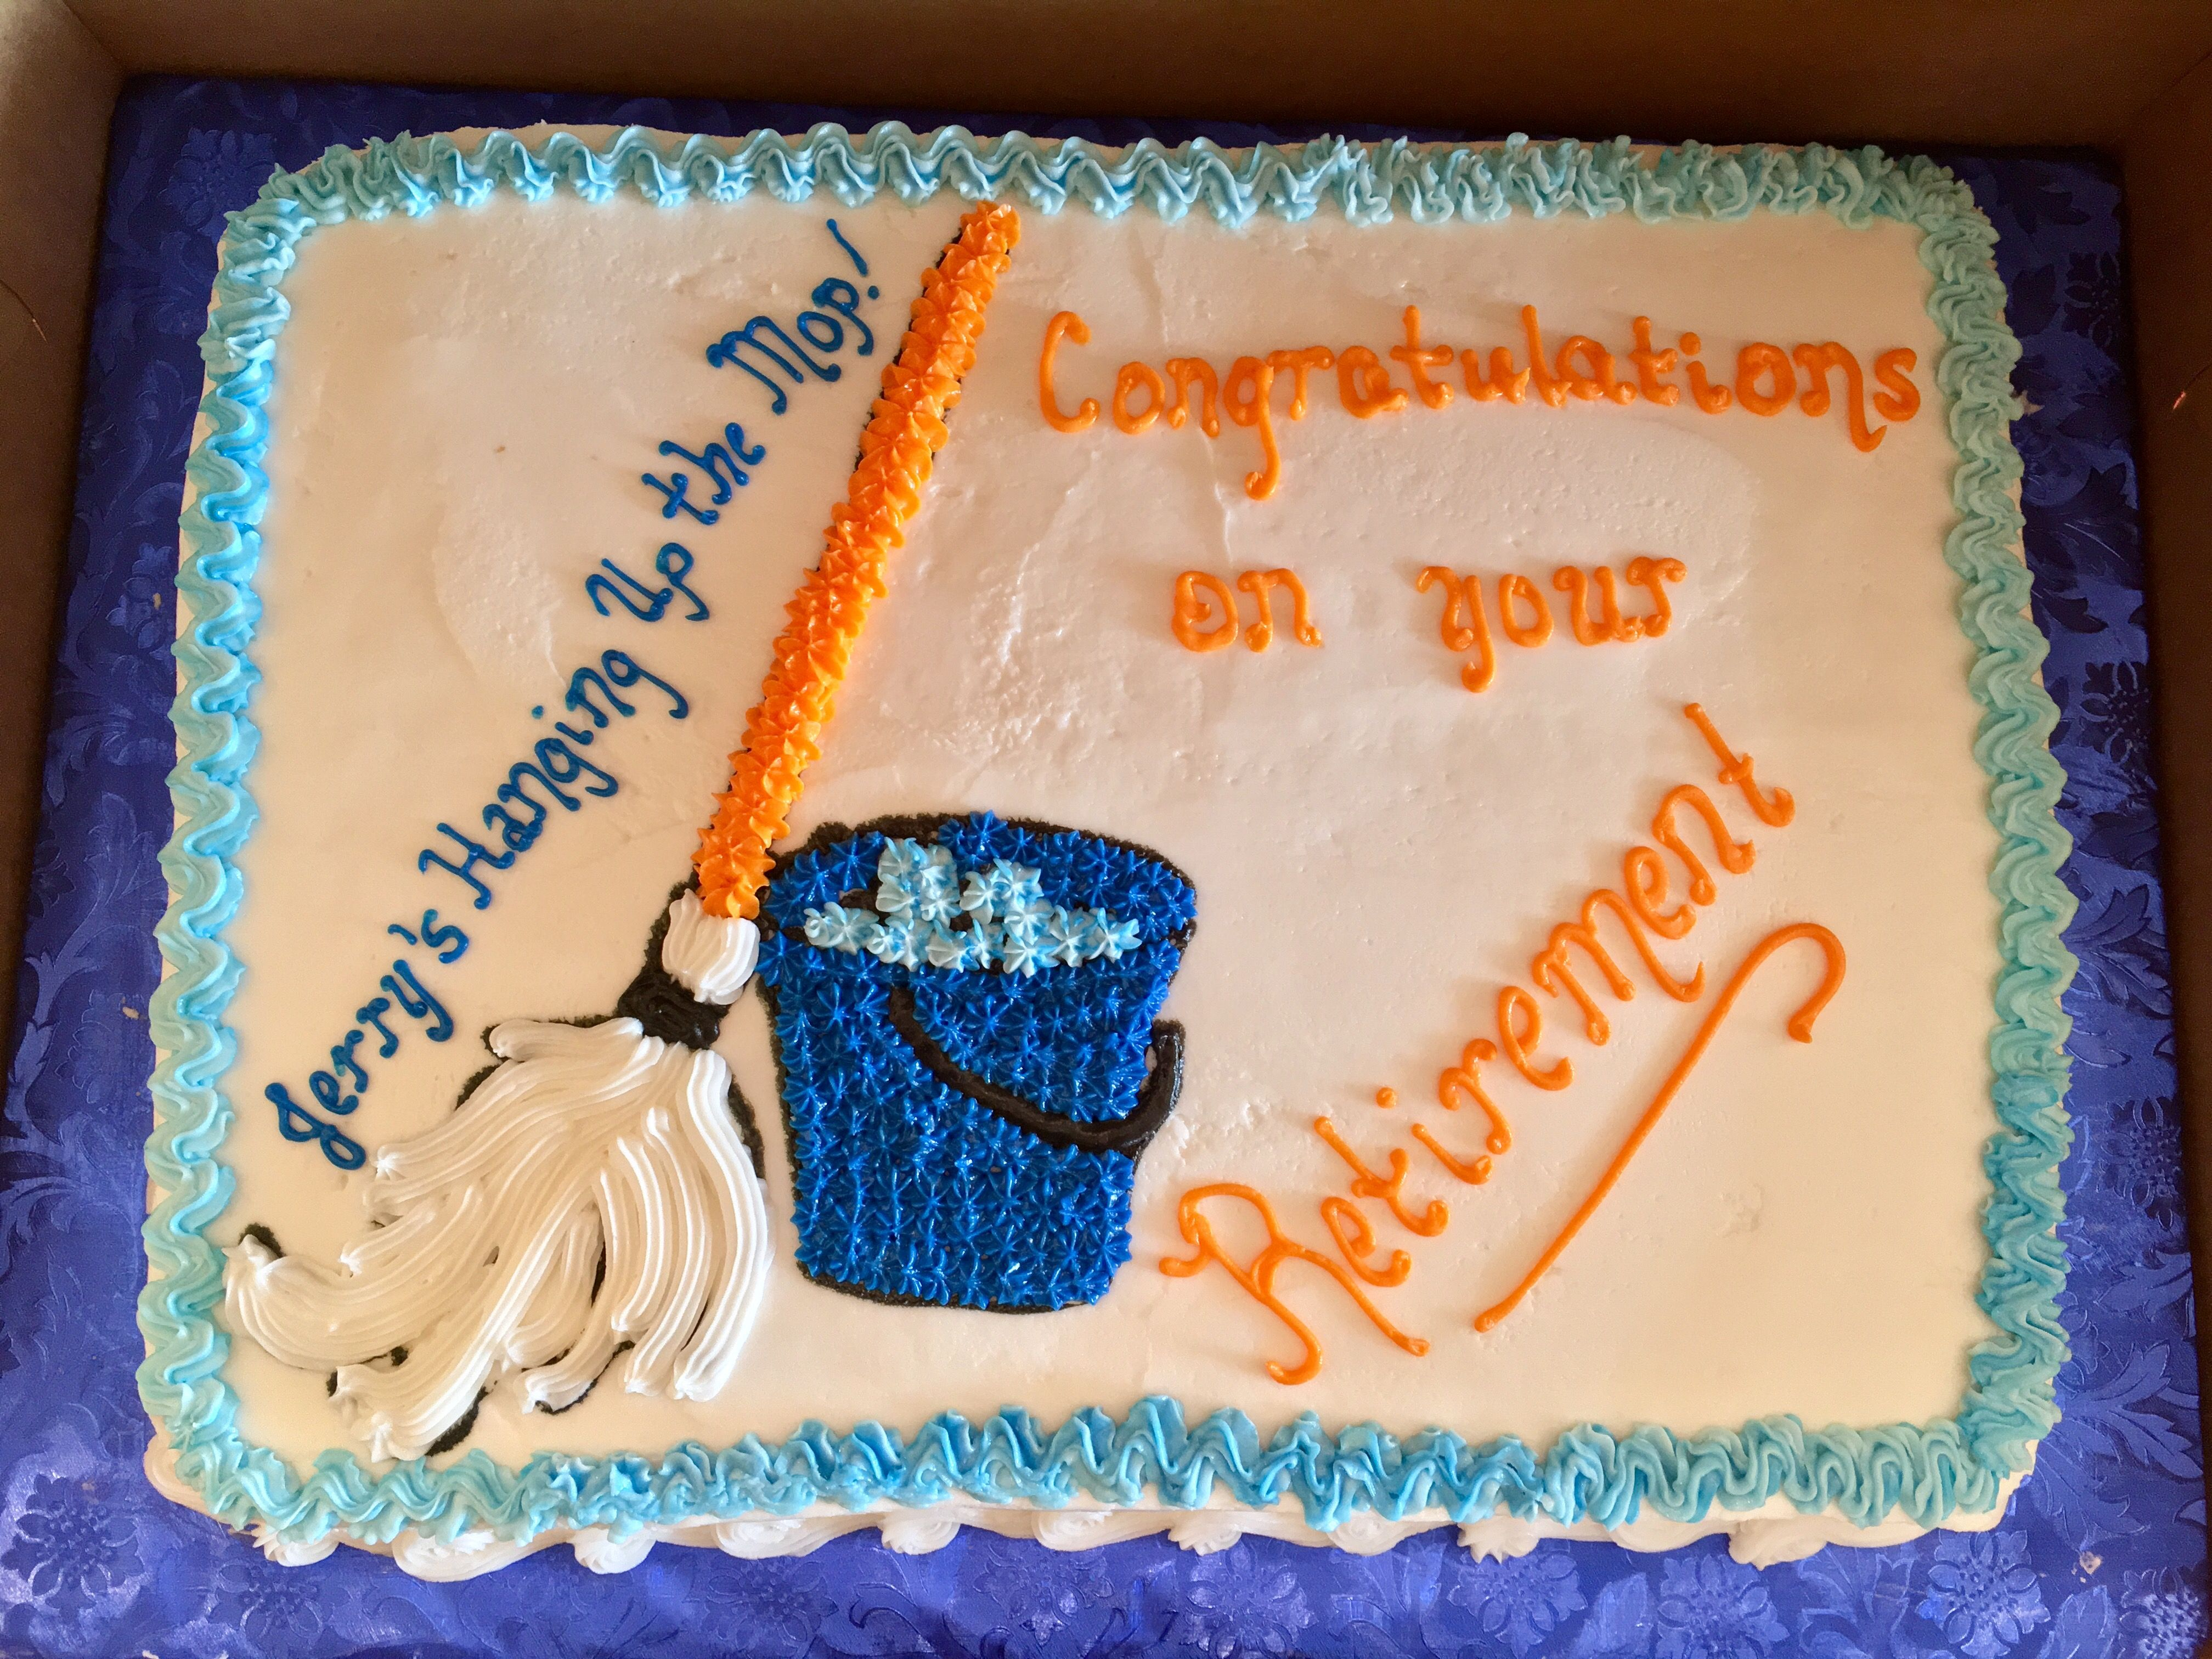 Janitor Retirement Cake | Cakes by Me | Pinterest ...